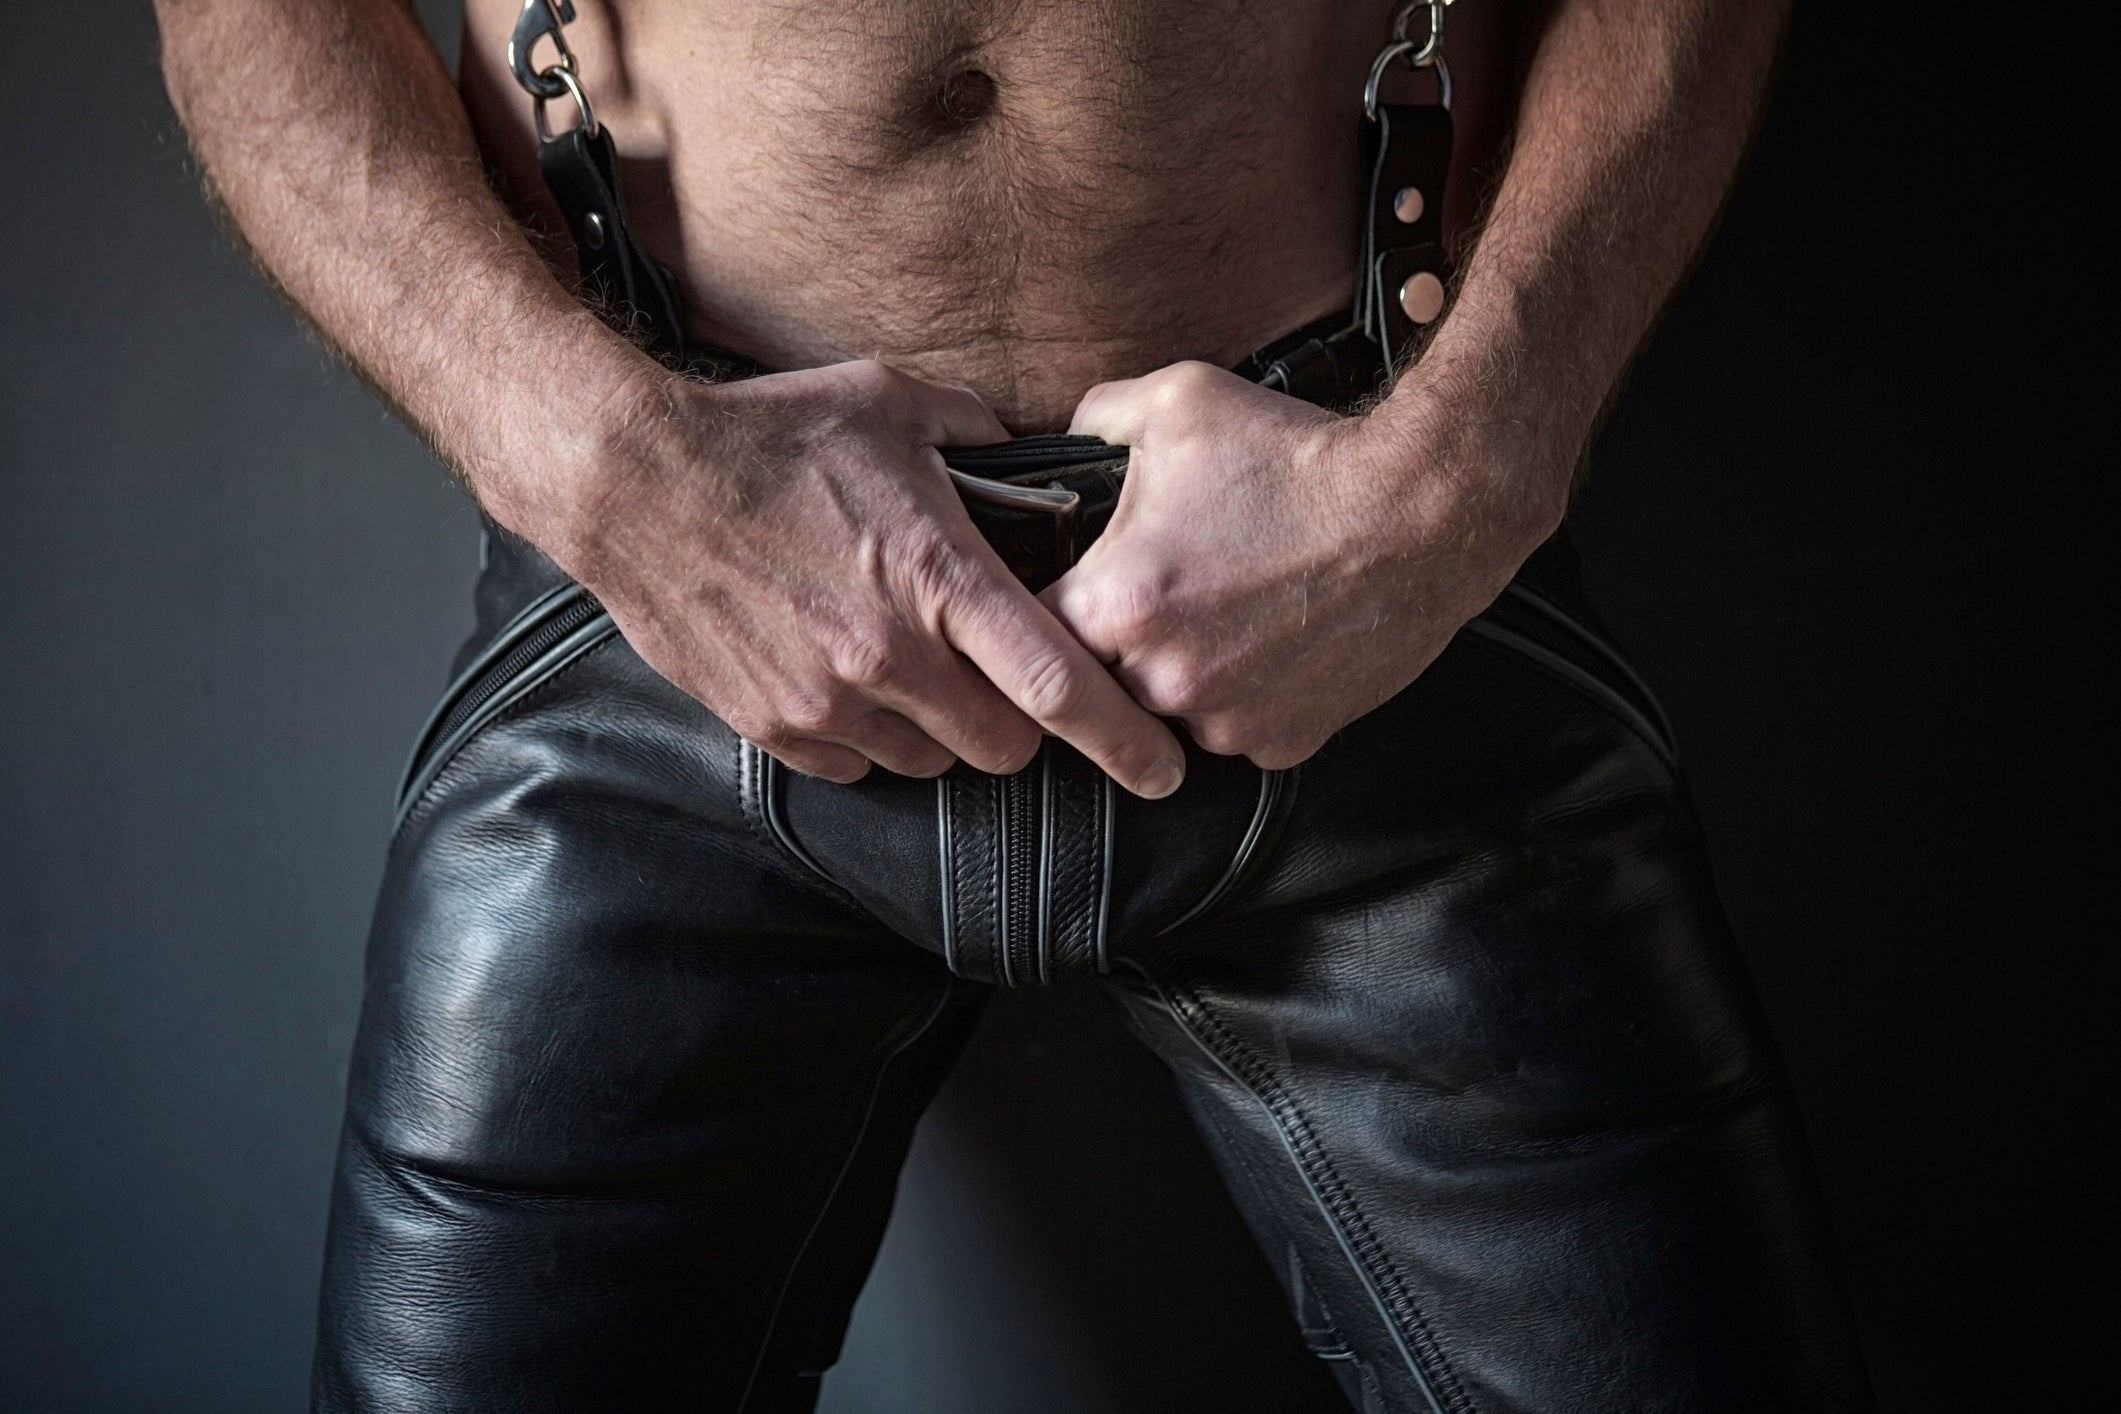 A leather man's lower body, hands on belt.